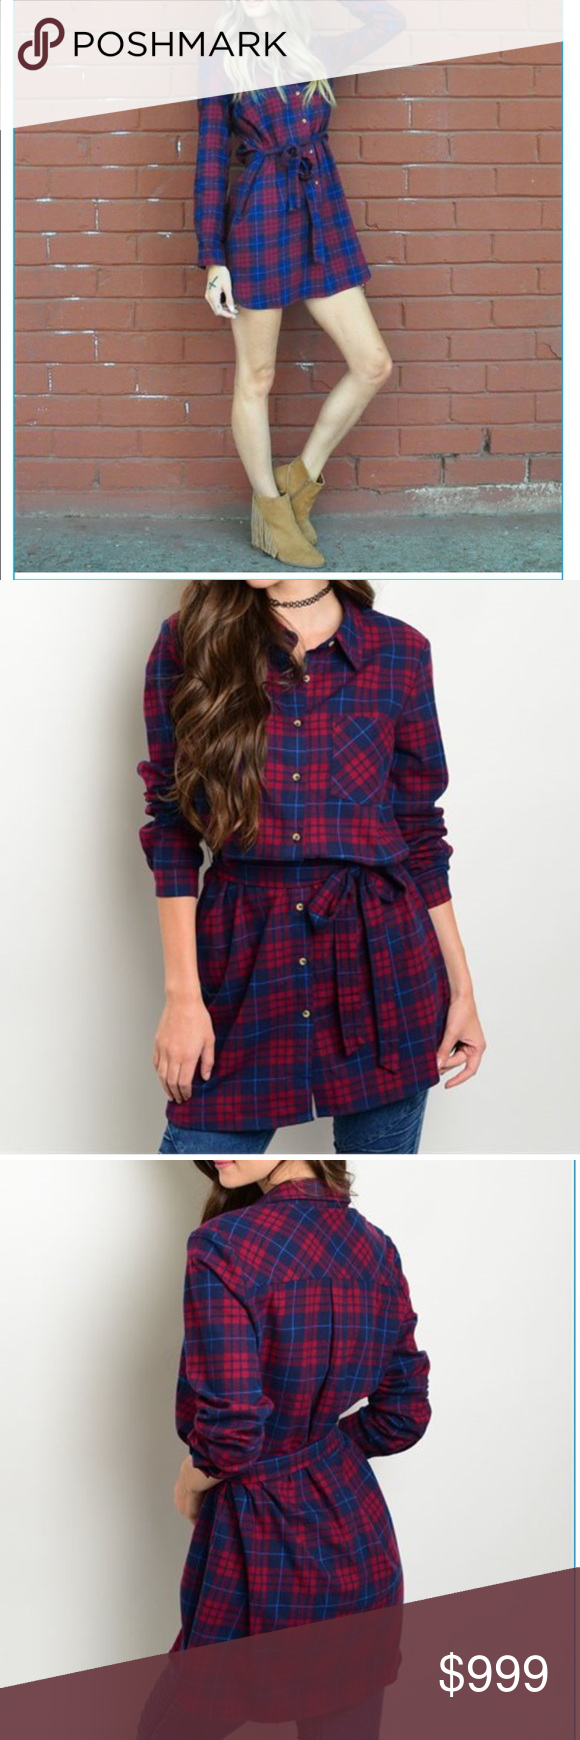 Navy and Red Top with Sash This plaid tunic top features long sleeves, a button up detail and a removable sash. 100% cotton and new from manufacturer without tags. Will happily measure length if asked! Price firm unless bundled. Tops